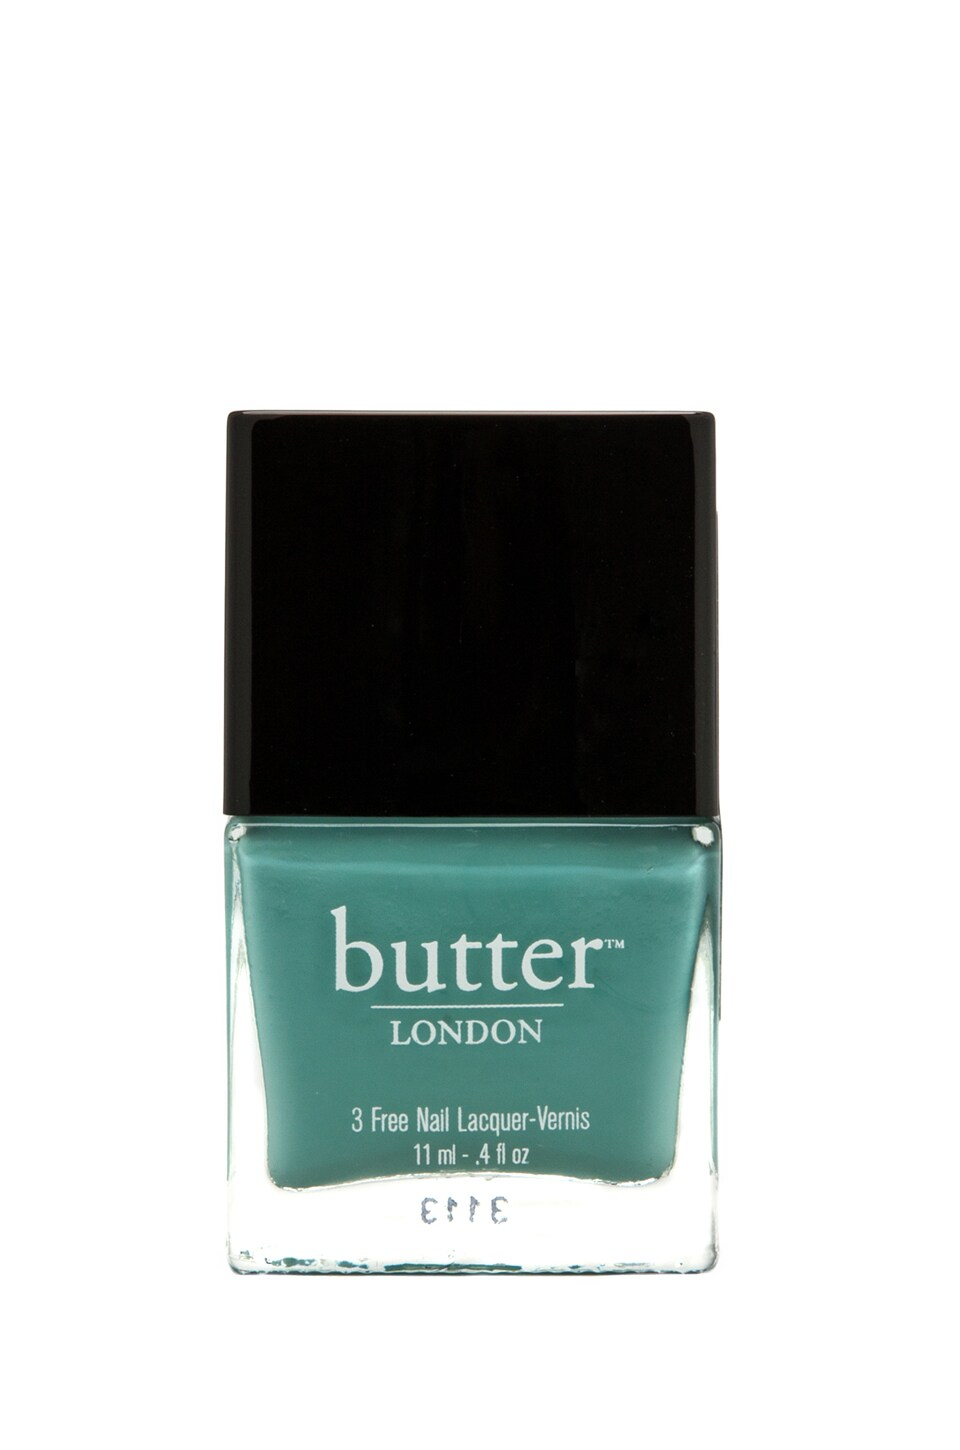 butter LONDON Nail Polish in Poole